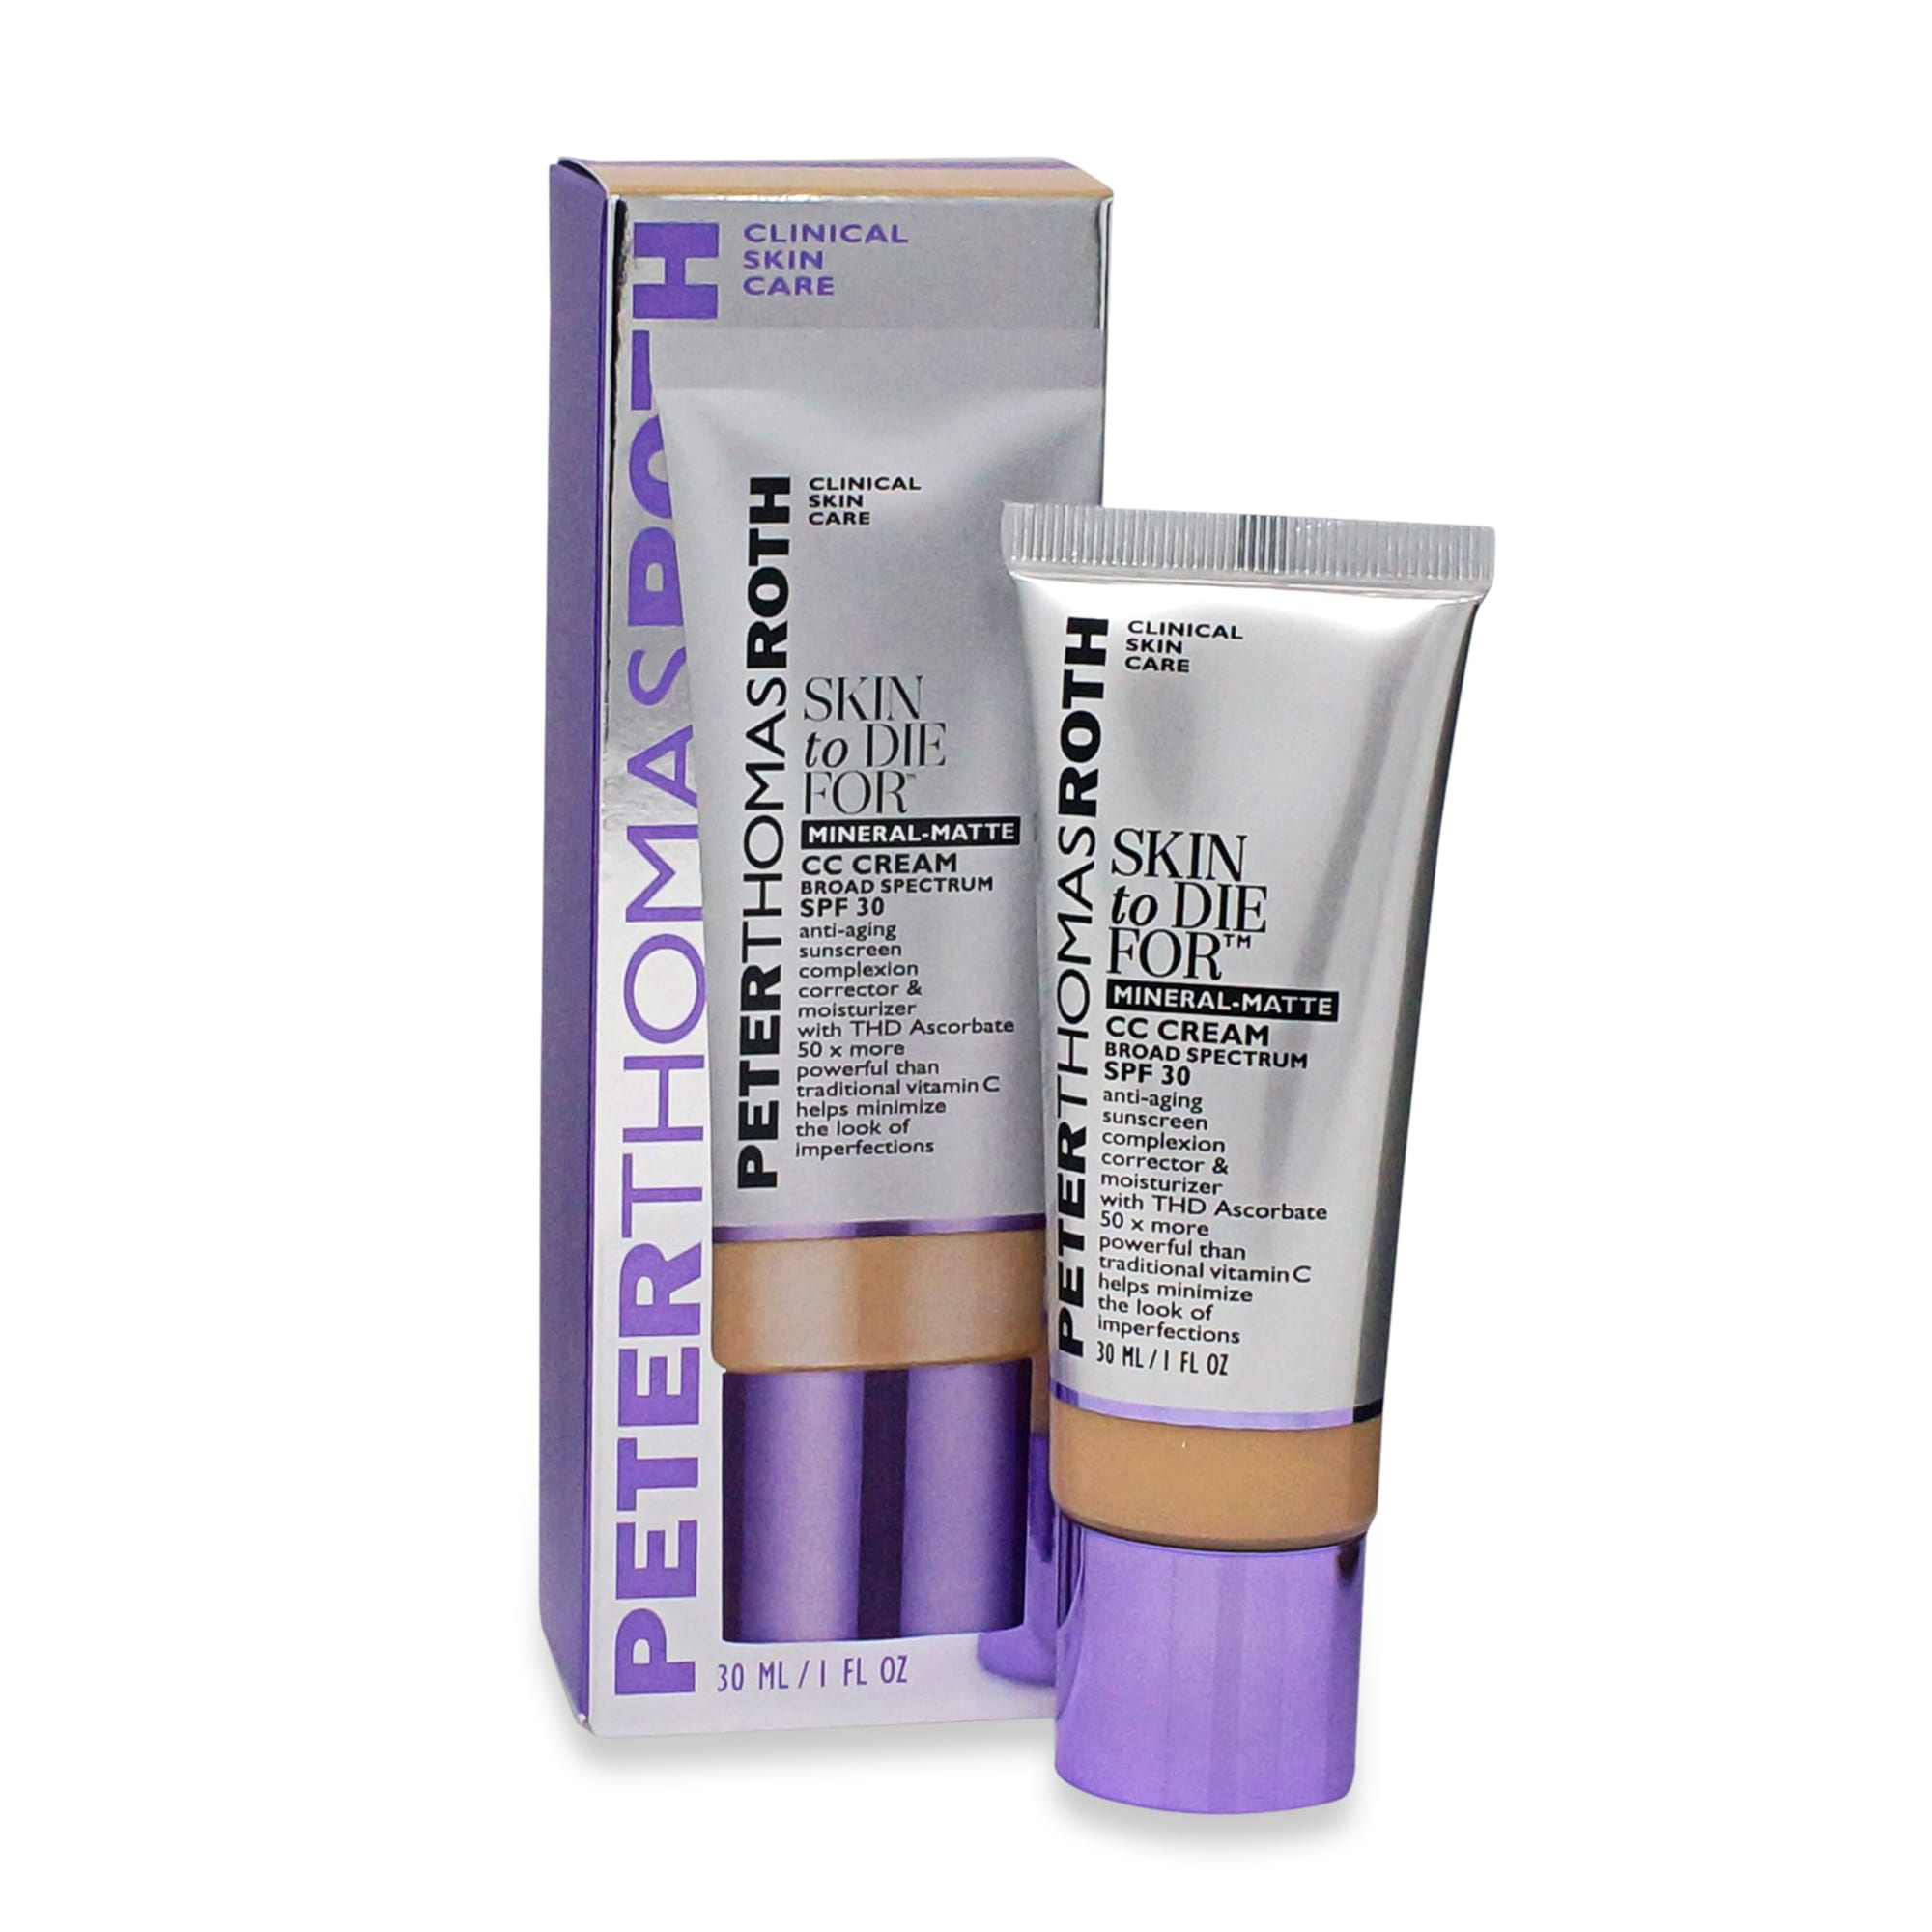 Peter Thomas Roth Skin to Die for is a lightweight skin care product for summer